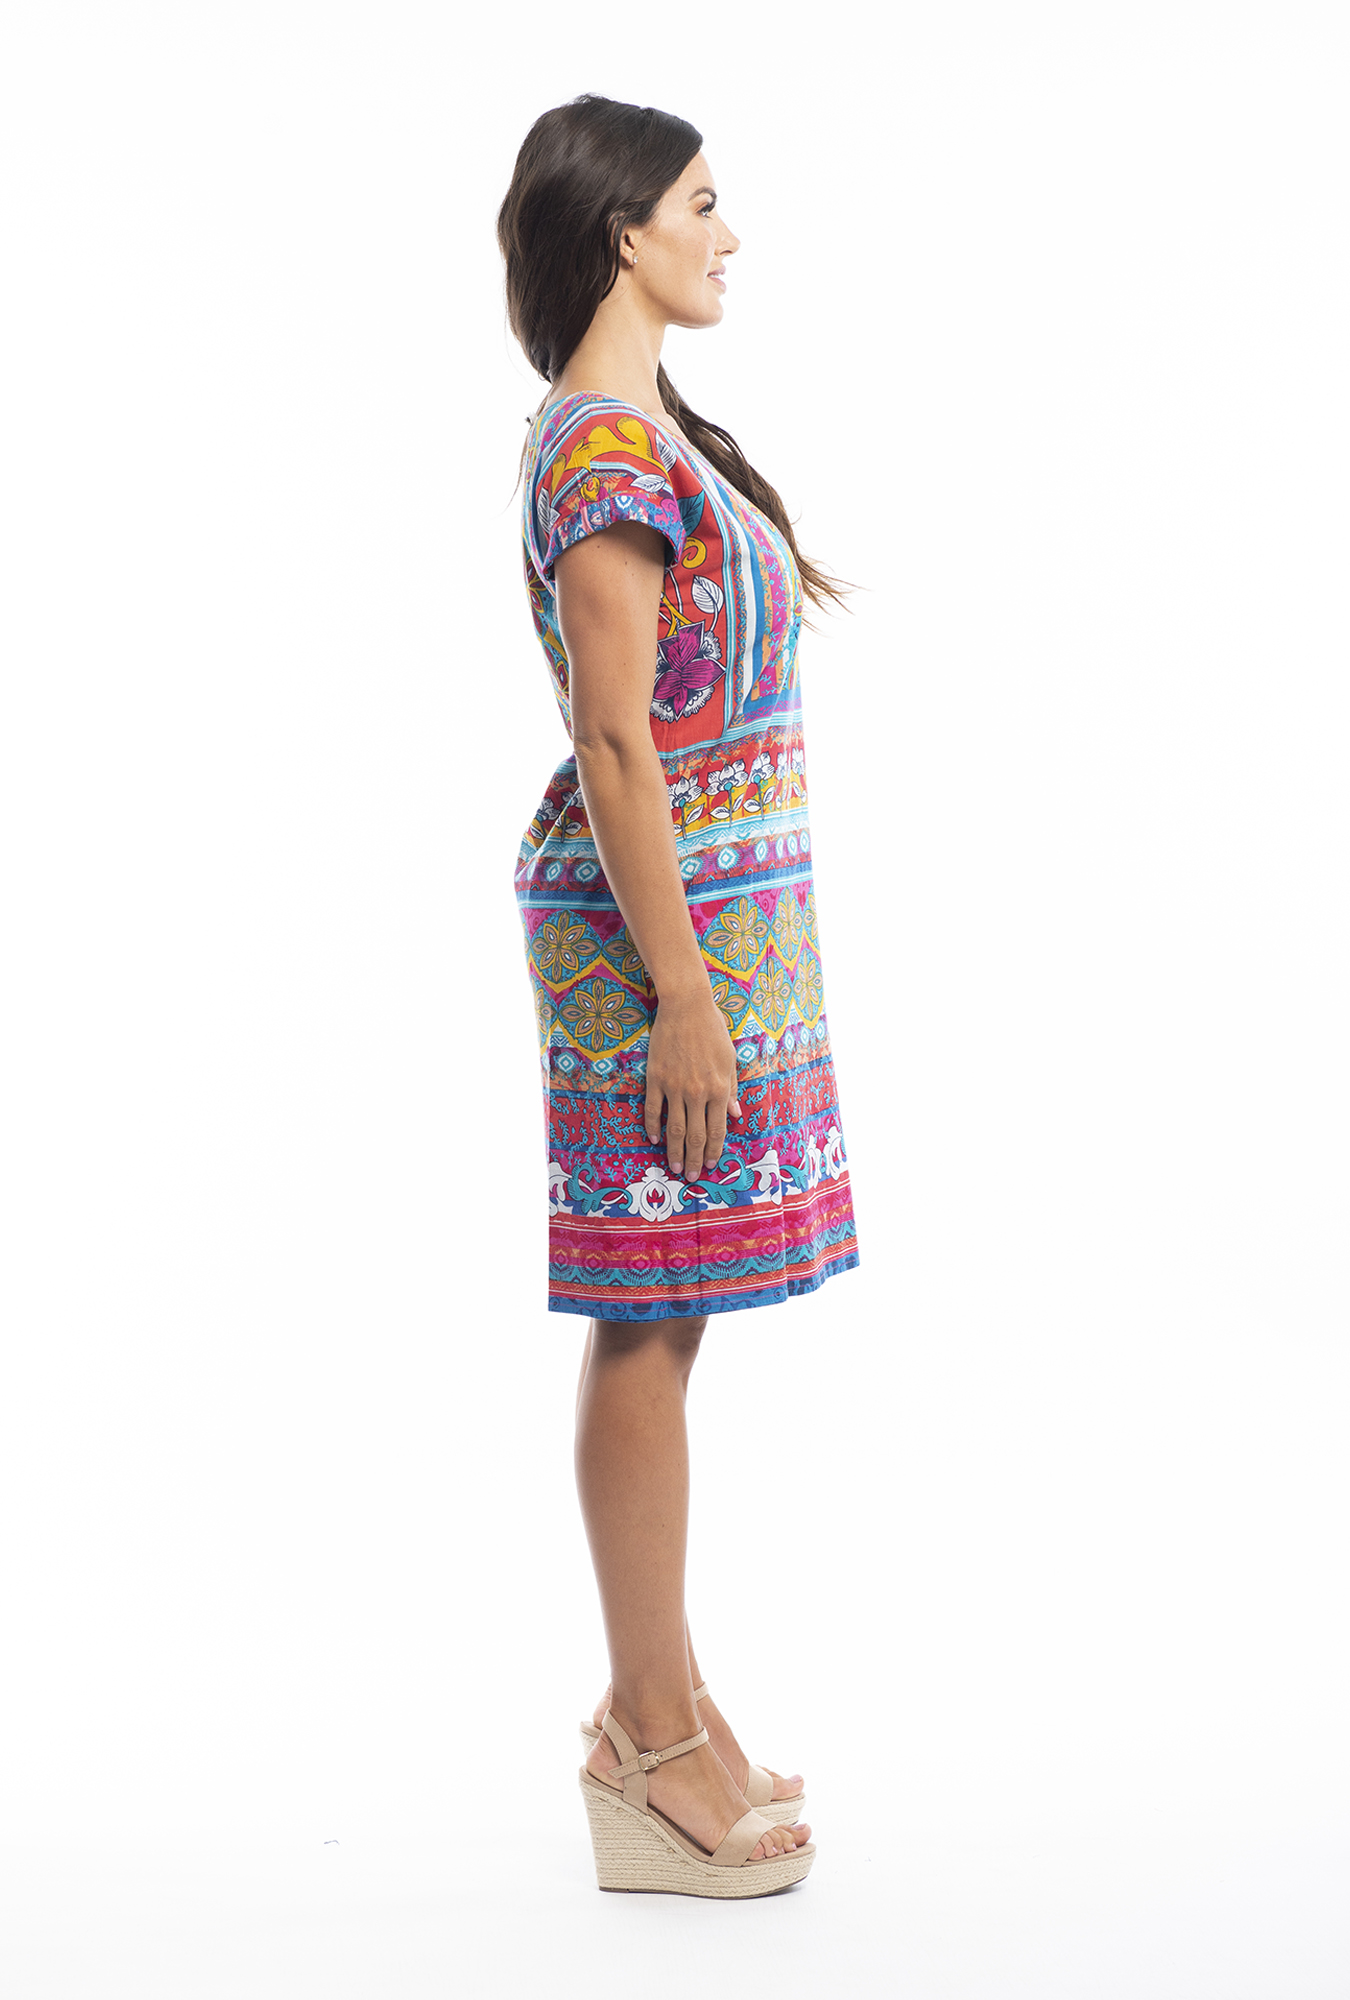 Eve Reversible in St Tropez Blue and Orange